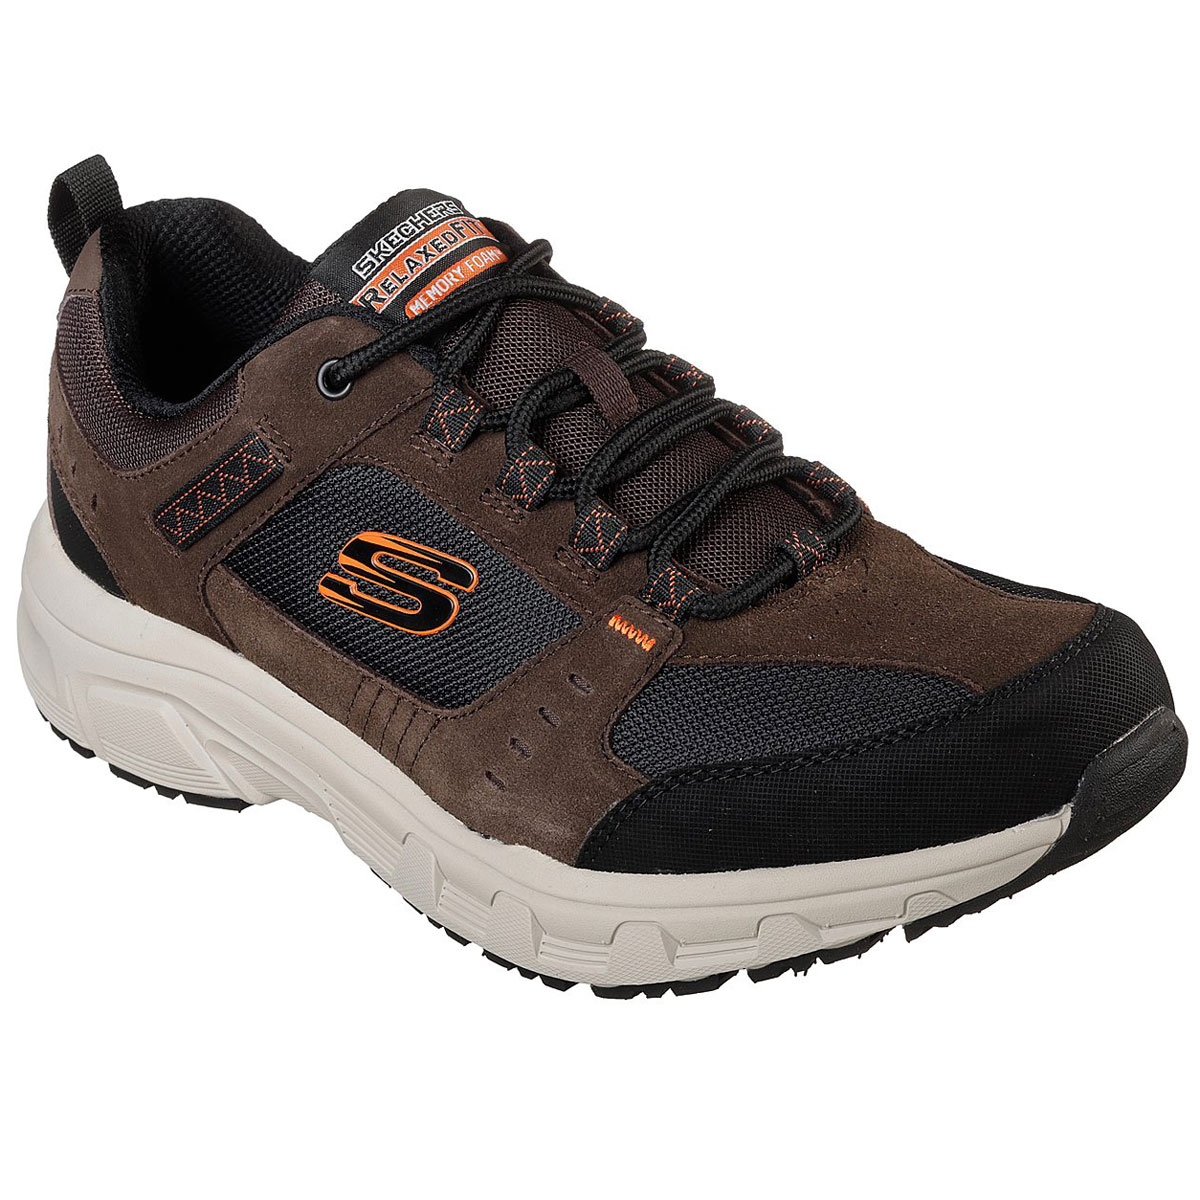 Skechers Men's Relaxed Fit: Oak Canyon Sneakers, Wide - Brown, 9.5